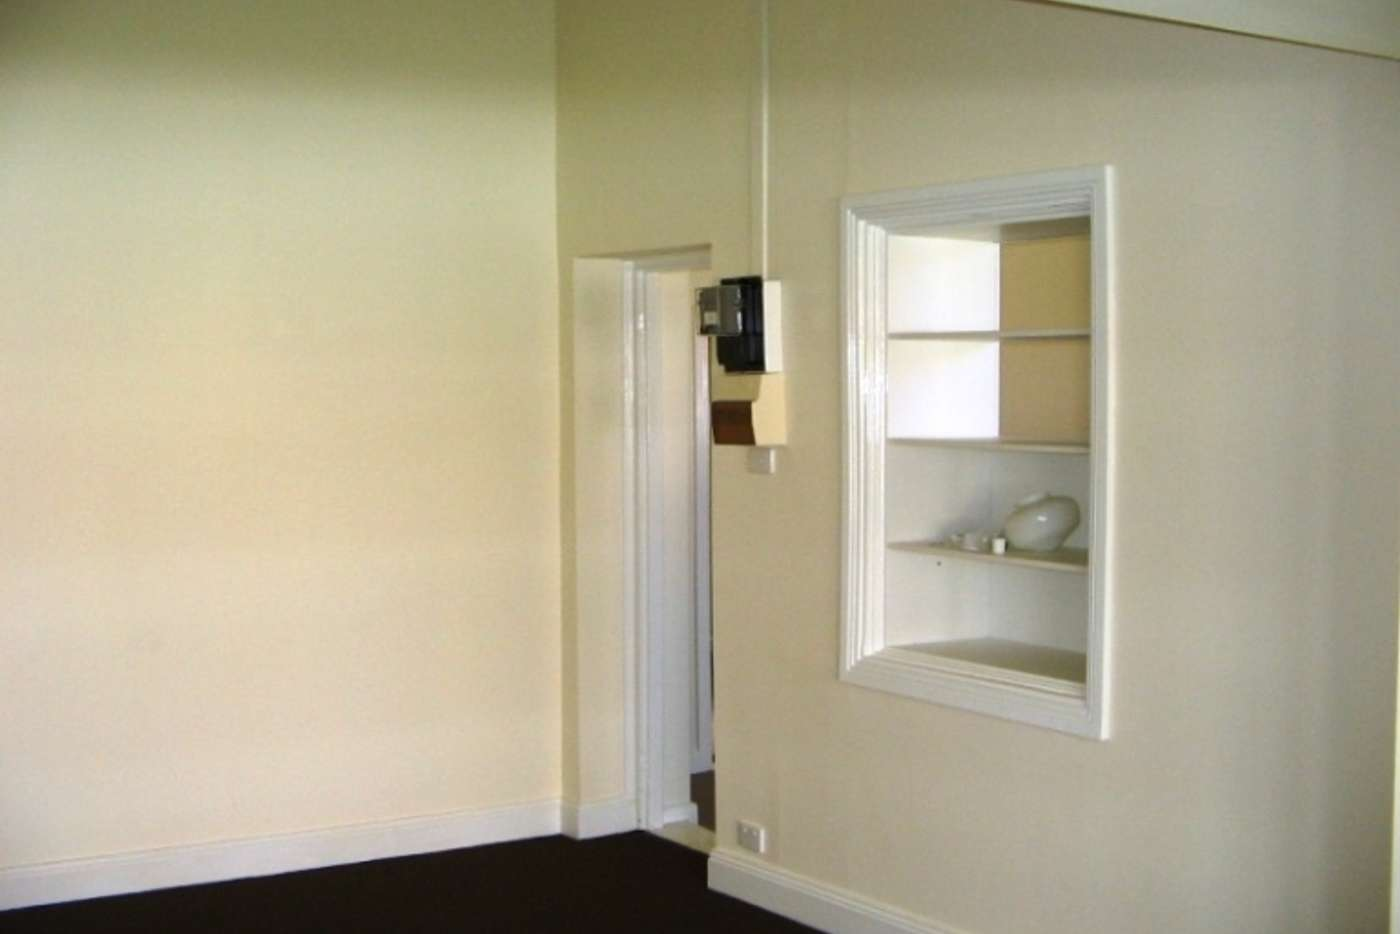 Seventh view of Homely house listing, 10 Sutton Avenue, Mount Gambier SA 5290